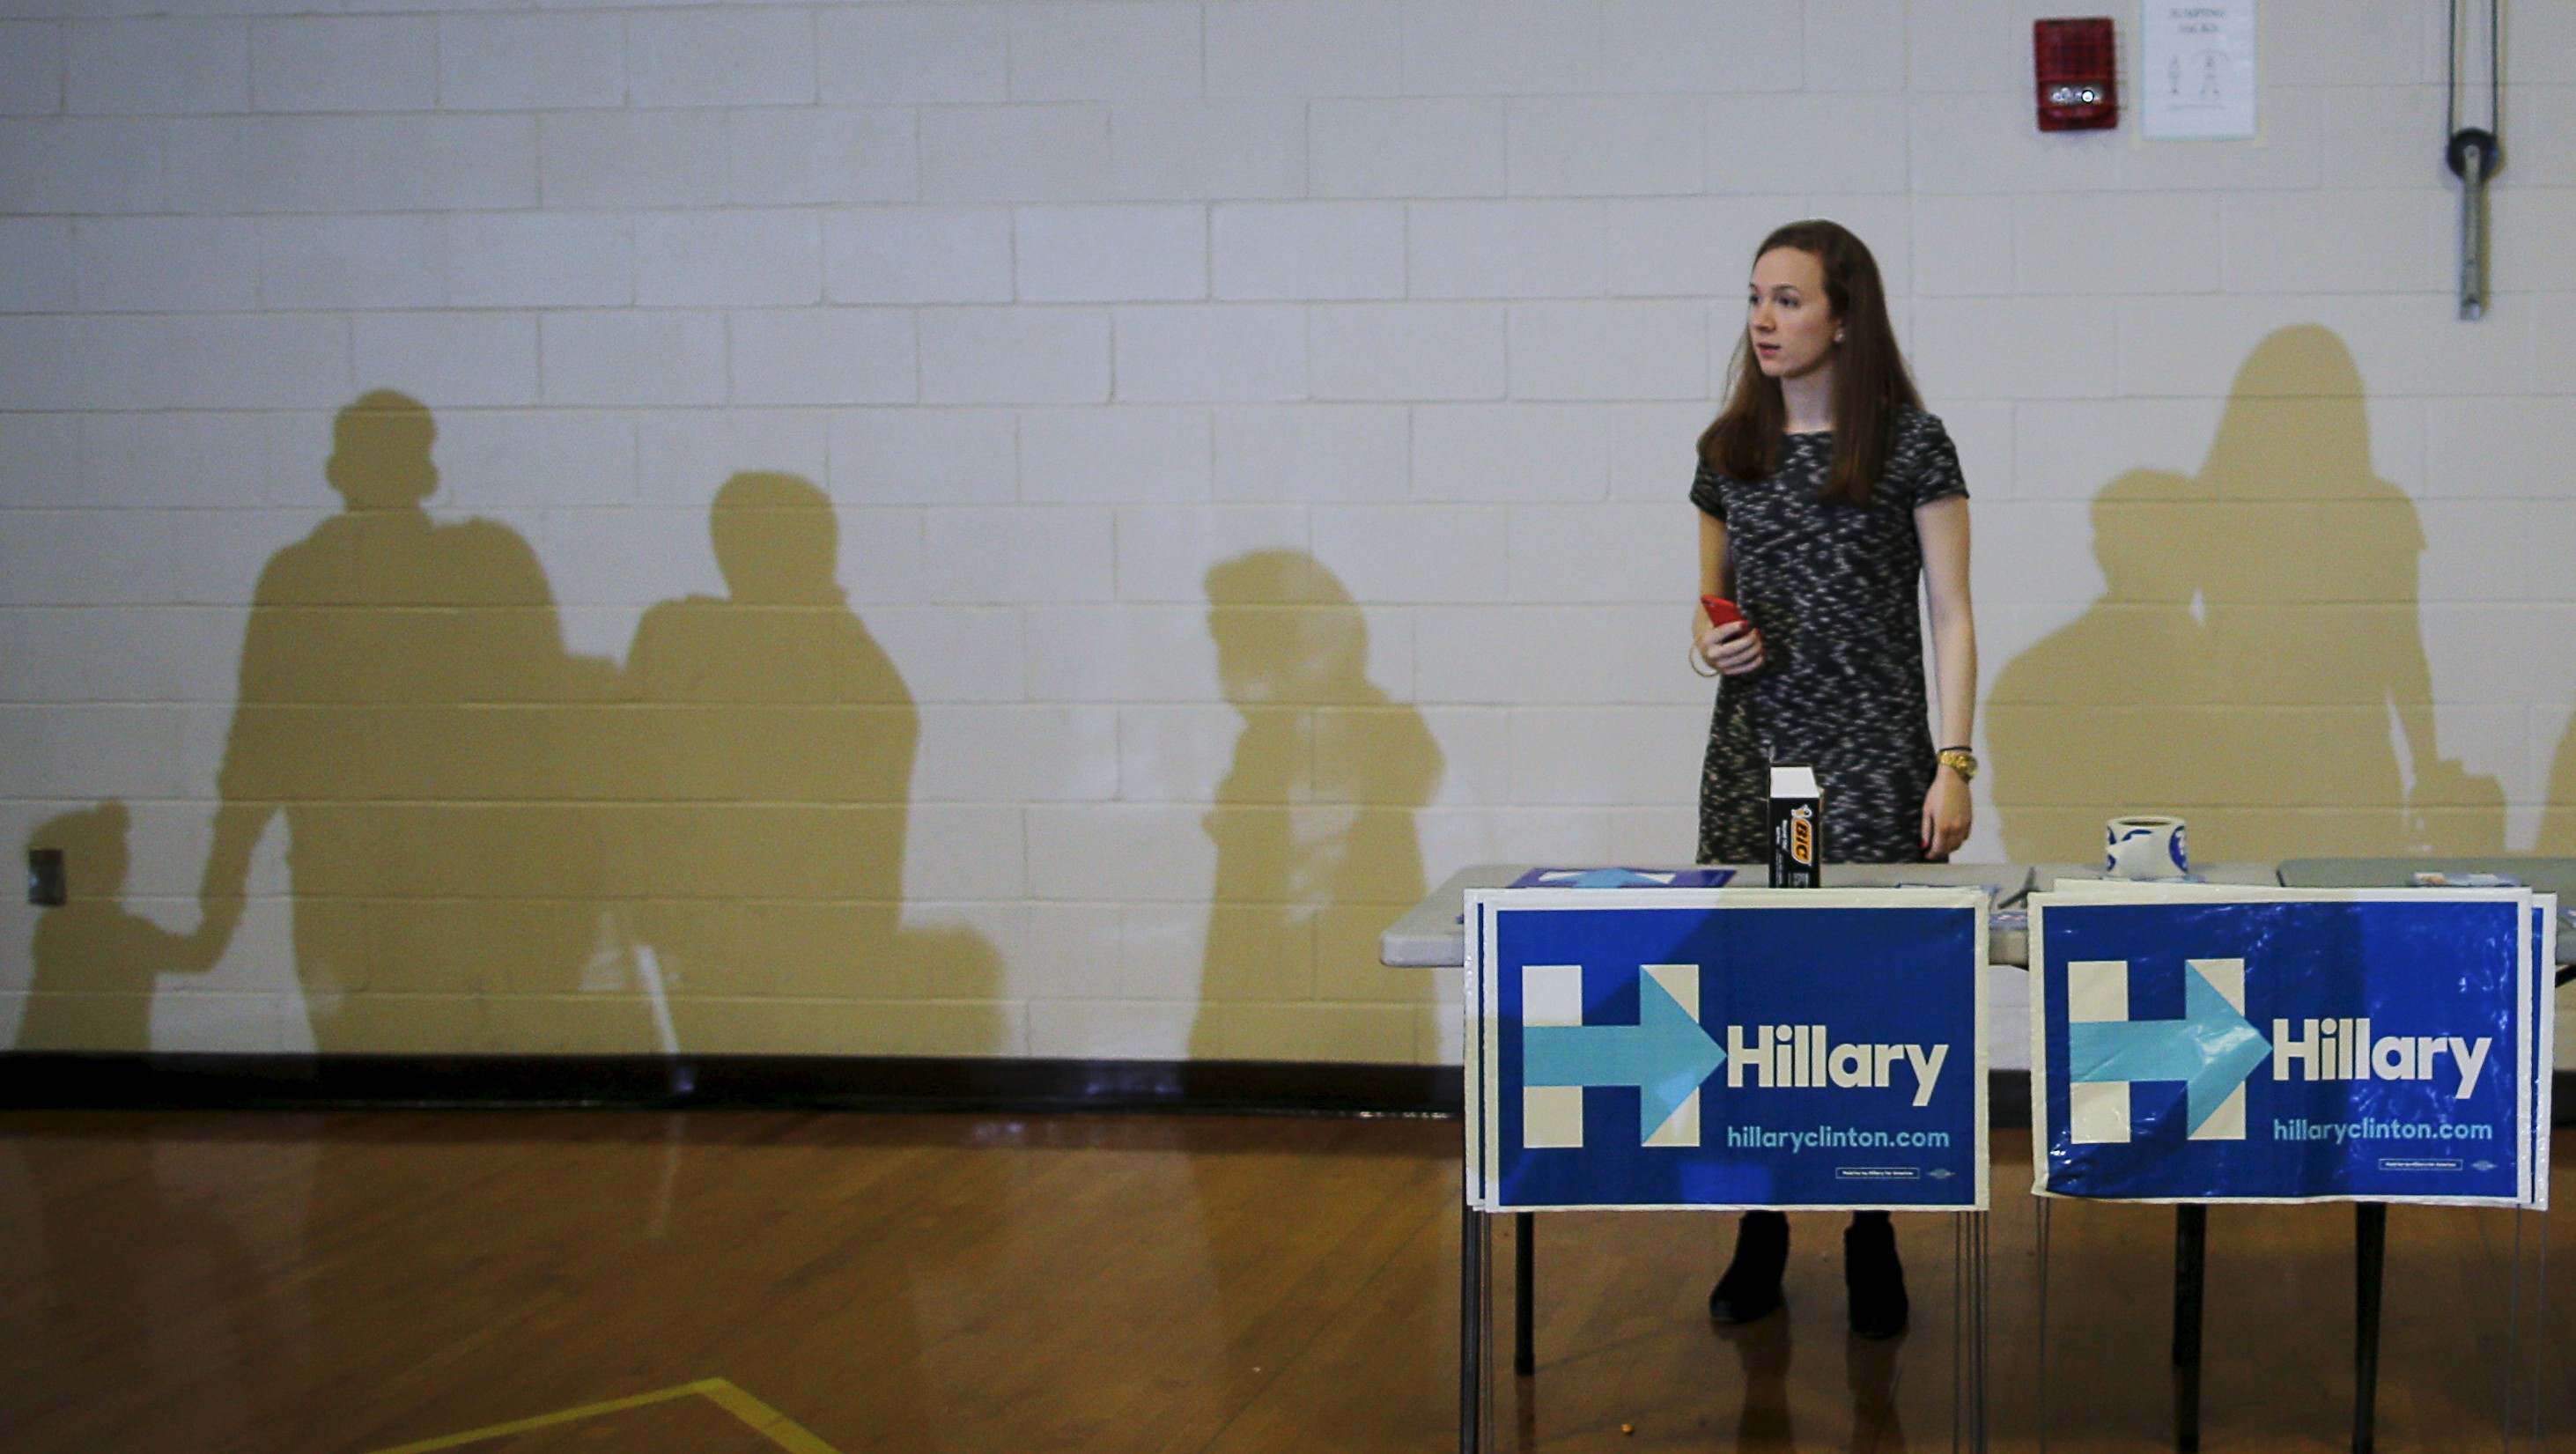 Campaign volunteer Katie Stallman waits to hand out signs before a town hall meeting with U.S. Democratic presidential candidate Hillary Clinton in Derry